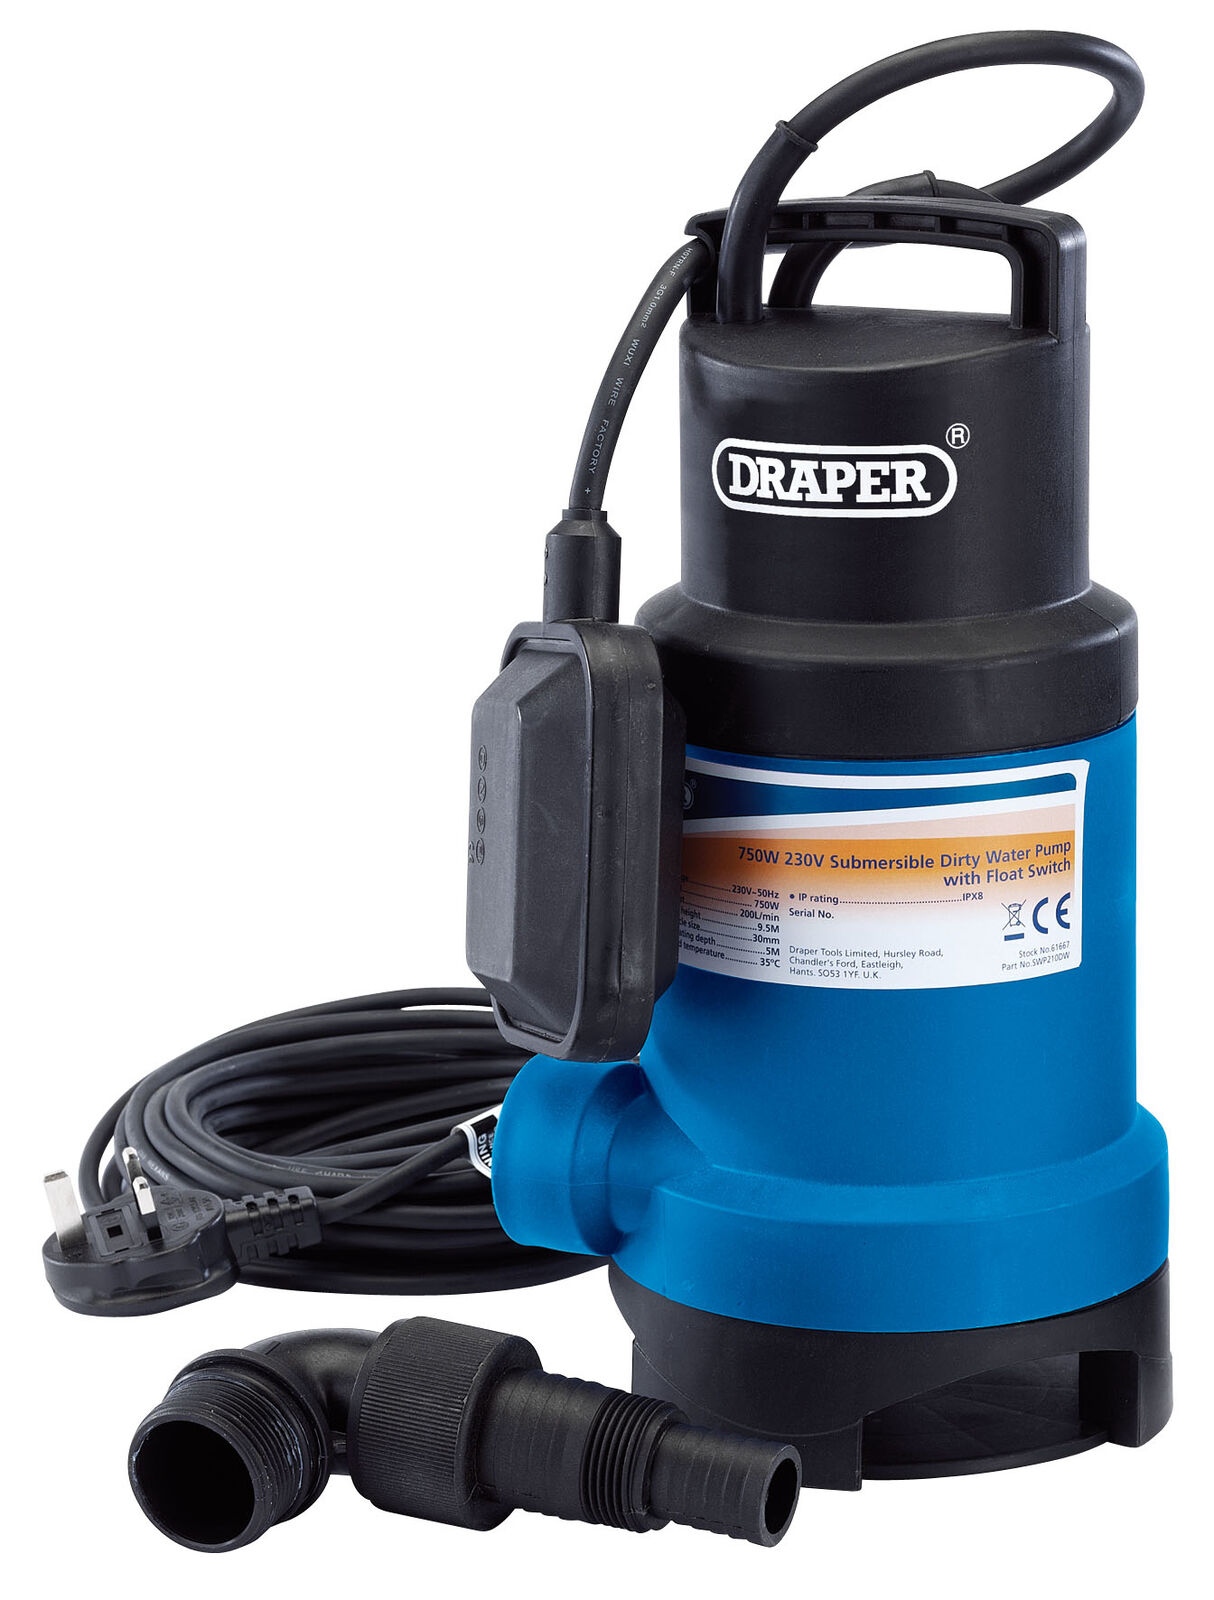 200L/Min Submersible Dirty Water Pump With Float Switch (750W) Draper 61667